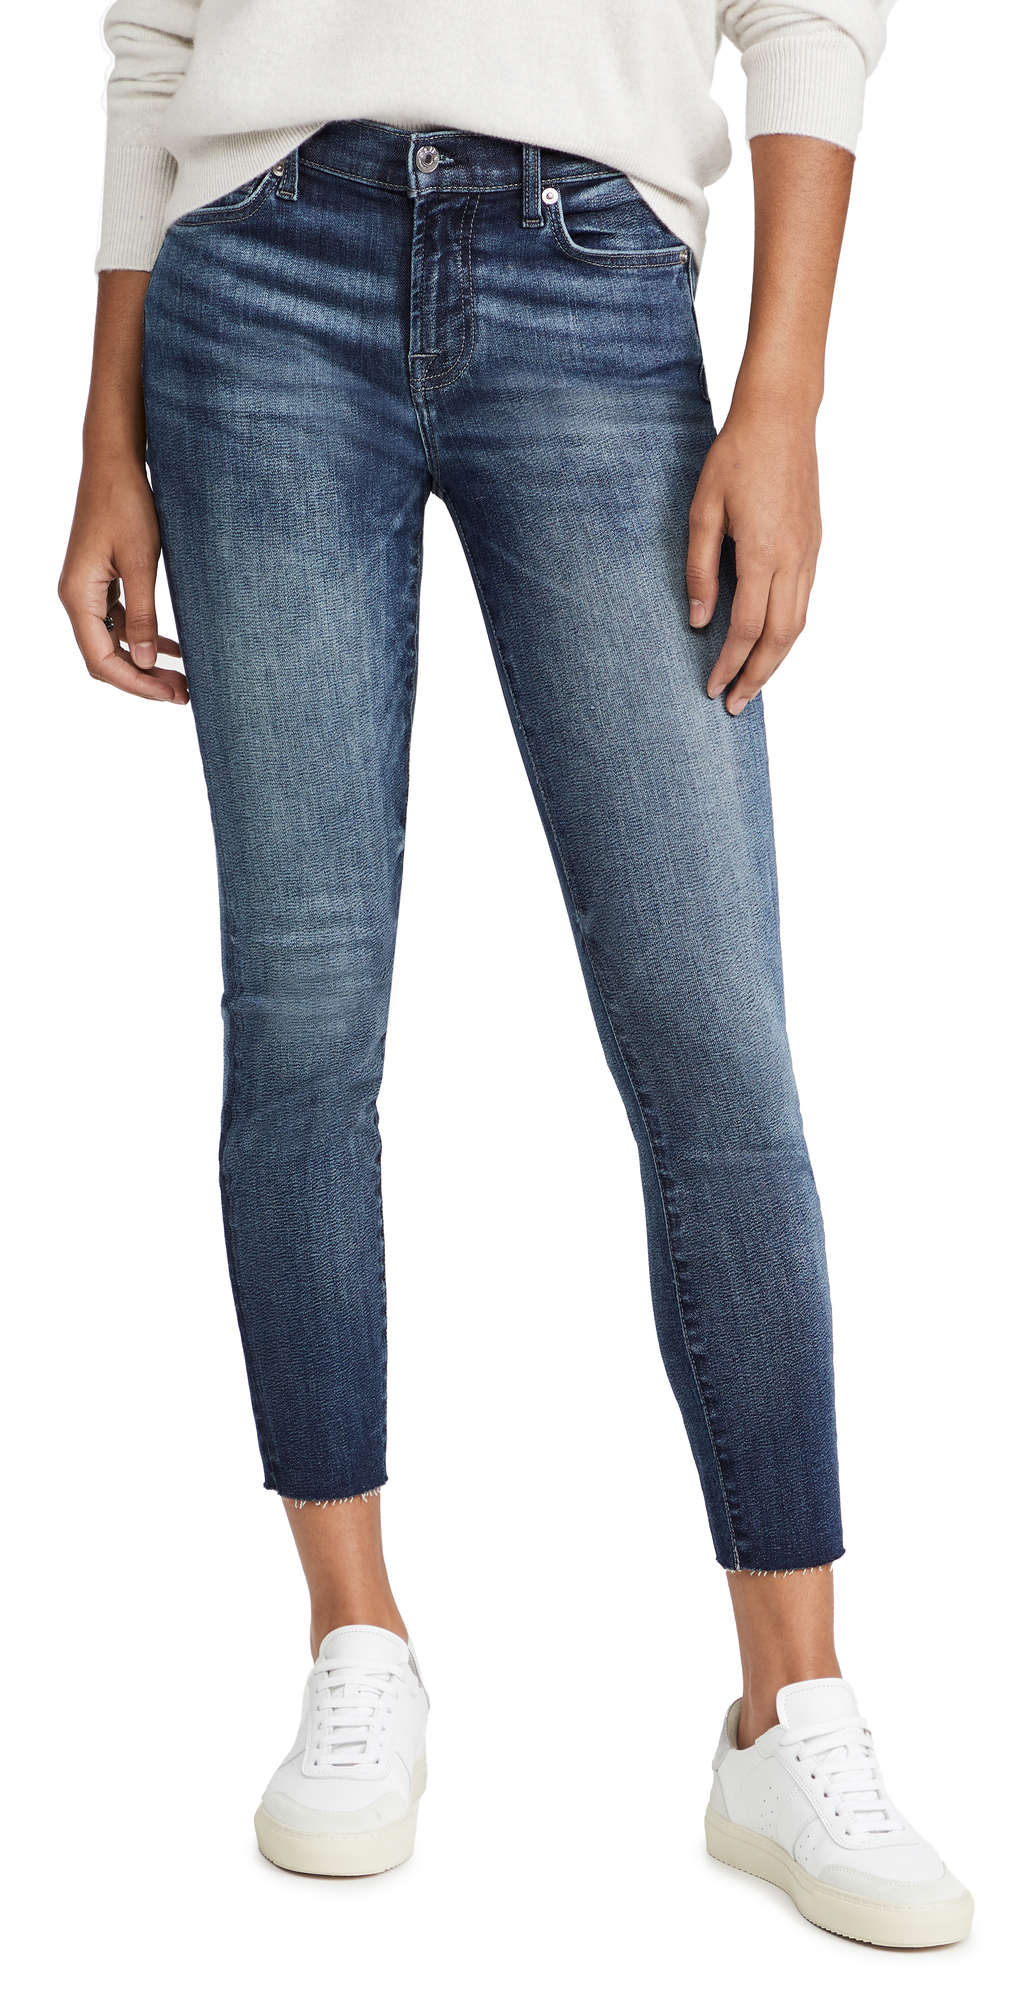 7 For All Mankind Ankle Skinny Cut Hem Jeans